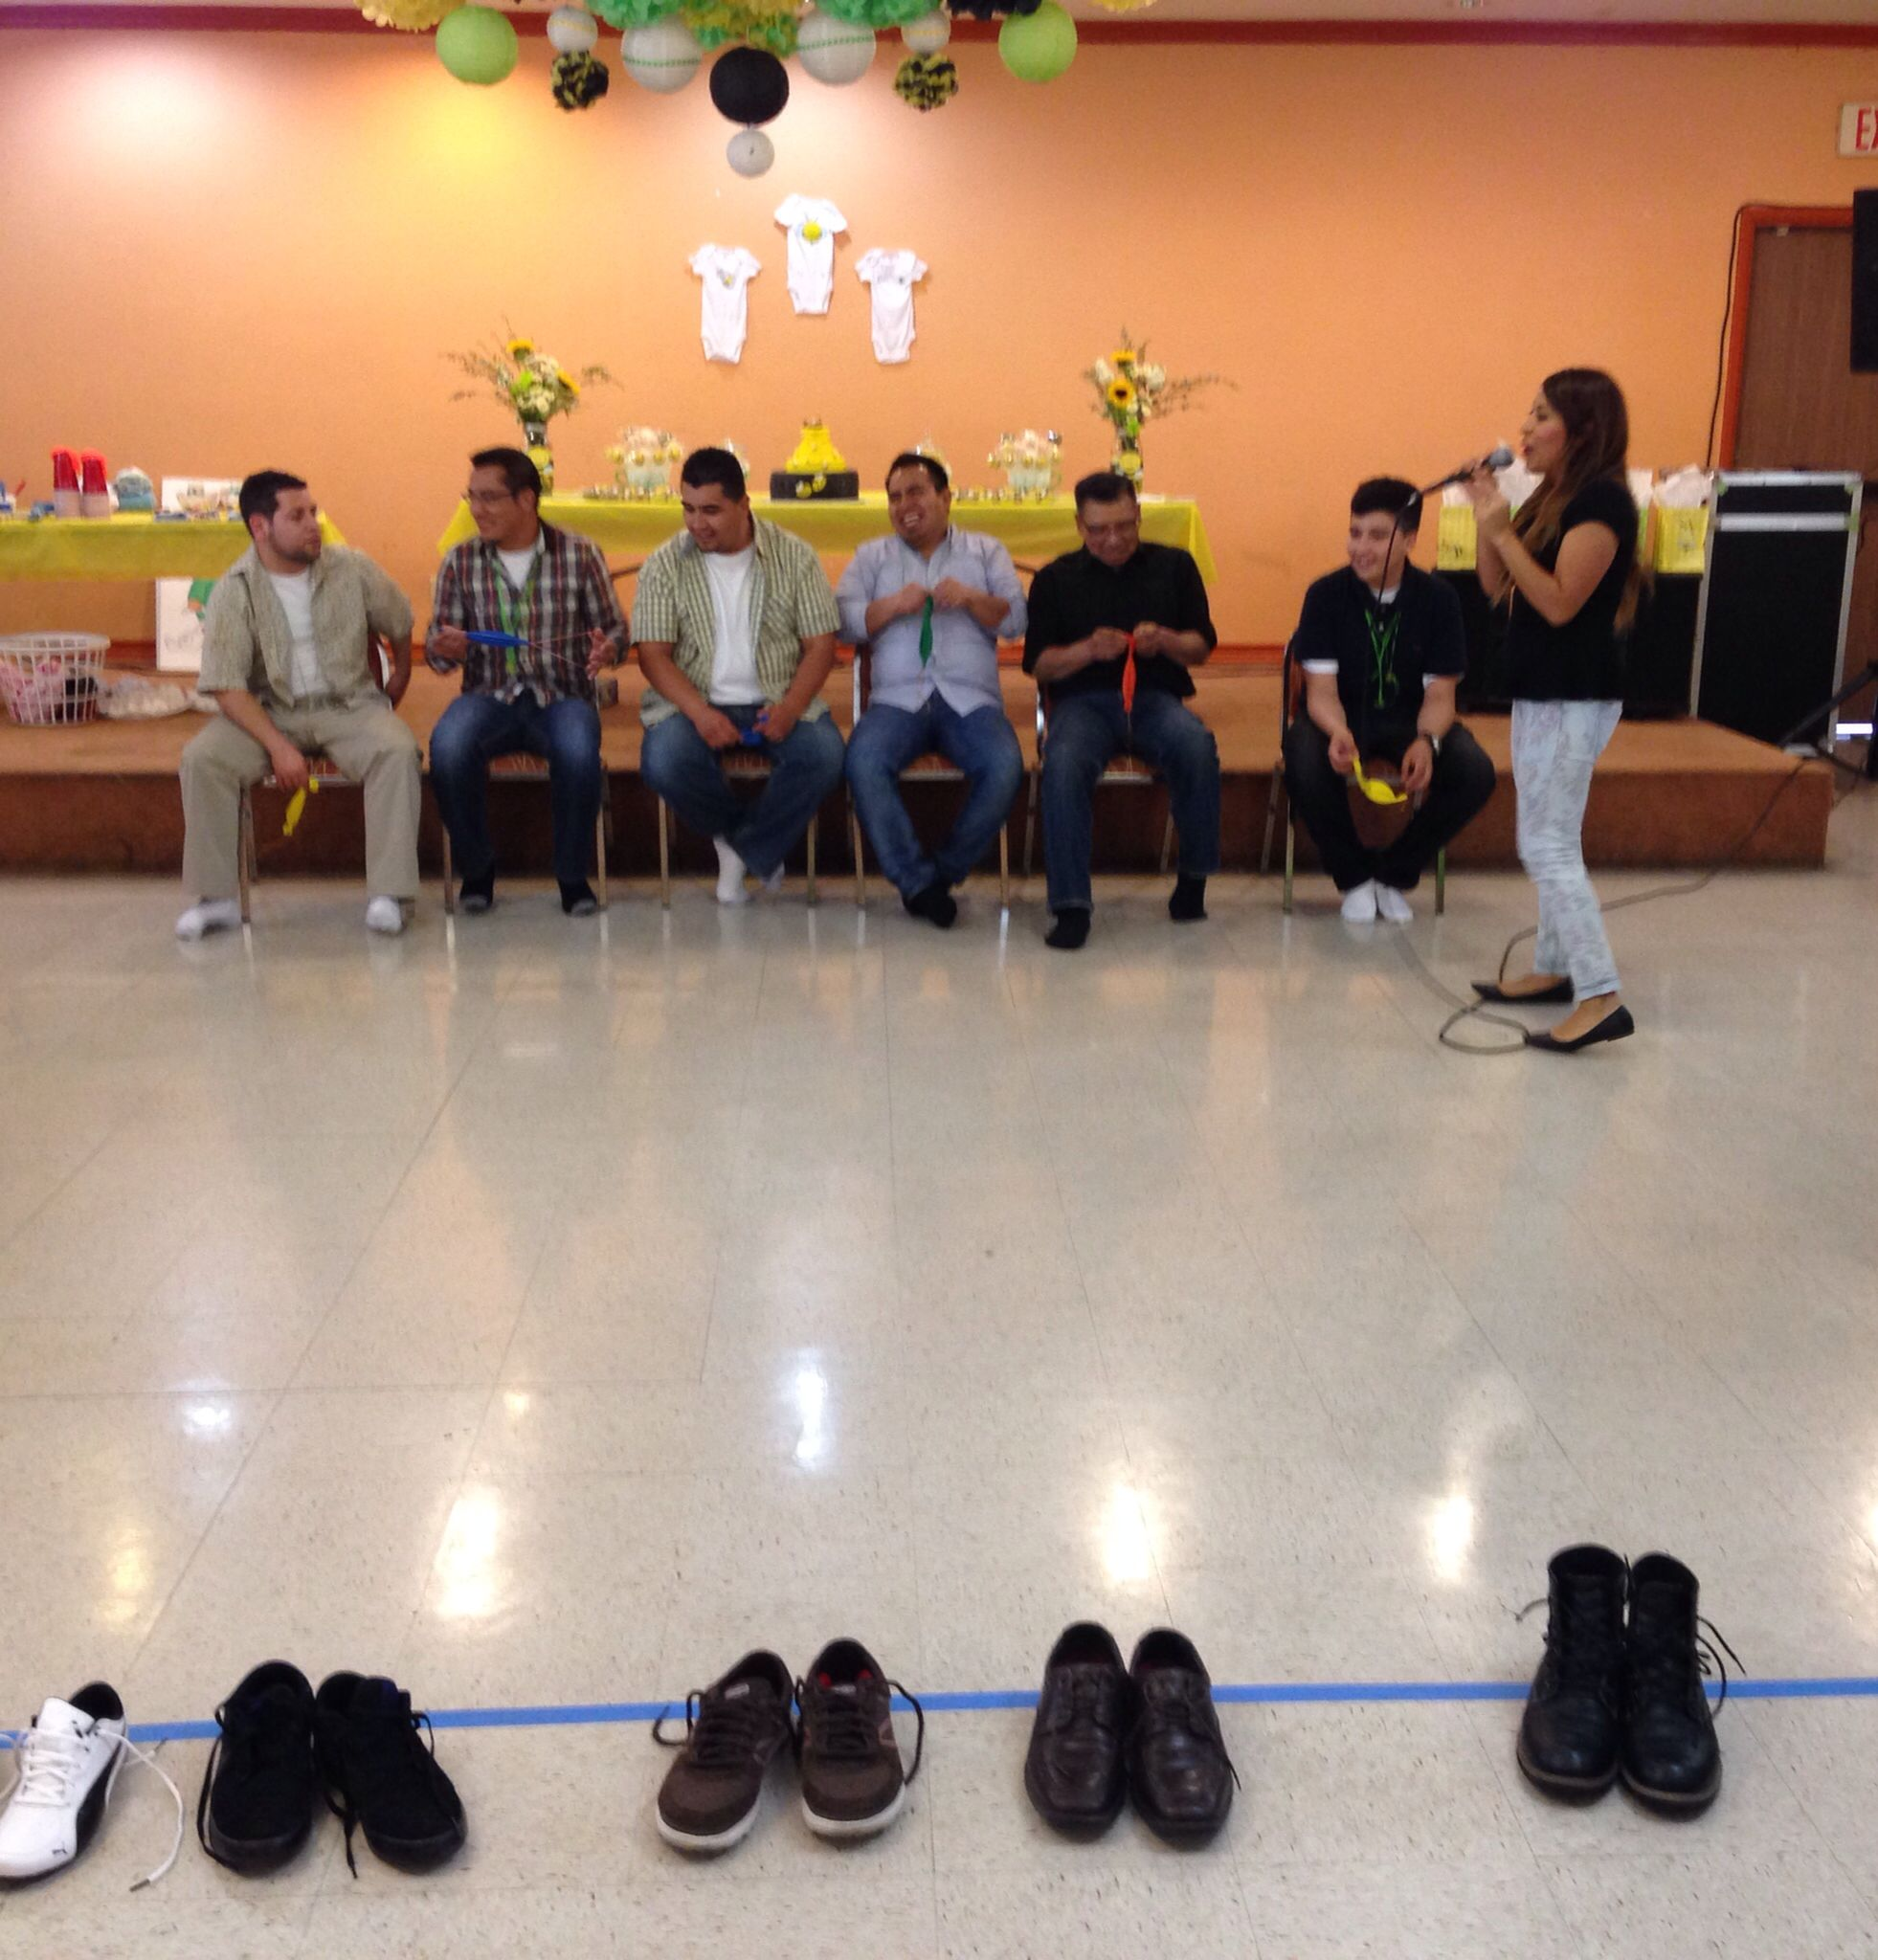 Captivating Co Ed Baby Shower Game. Have The Men Take Off Their Shoes And Place Them